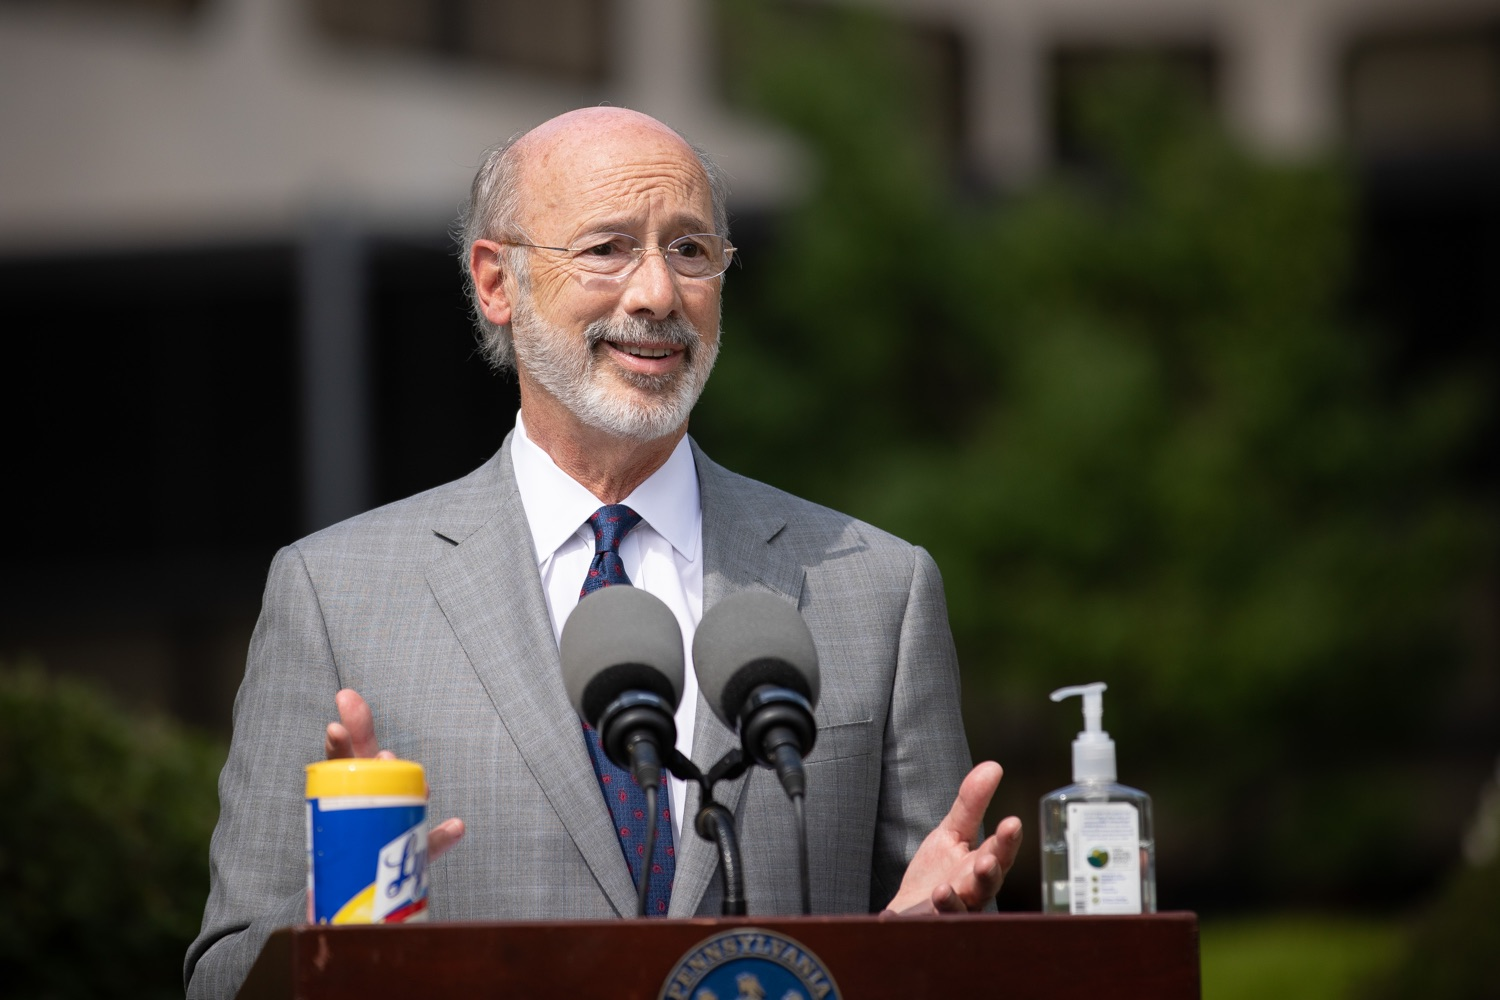 """<a href=""""https://filesource.wostreaming.net/commonwealthofpa/photo/18093_gov-healthcare_workers_dz_02.jpg"""" target=""""_blank"""">⇣Download Photo<br></a>Pennsylvania Governor Tom Wolf answering questions from the press during his visit to Milton S. Hershey Medical Center. As the commonwealth continues its measured, phased reopening and COVID-19 case counts continue to decline, Governor Tom Wolf visited Penn State Milton S. Hershey Medical Center today to thank staff and learn more about how the facility is handling the pandemic and preparing for a possible resurgence in the fall.  Harrisburg, PA  June 24, 2020"""